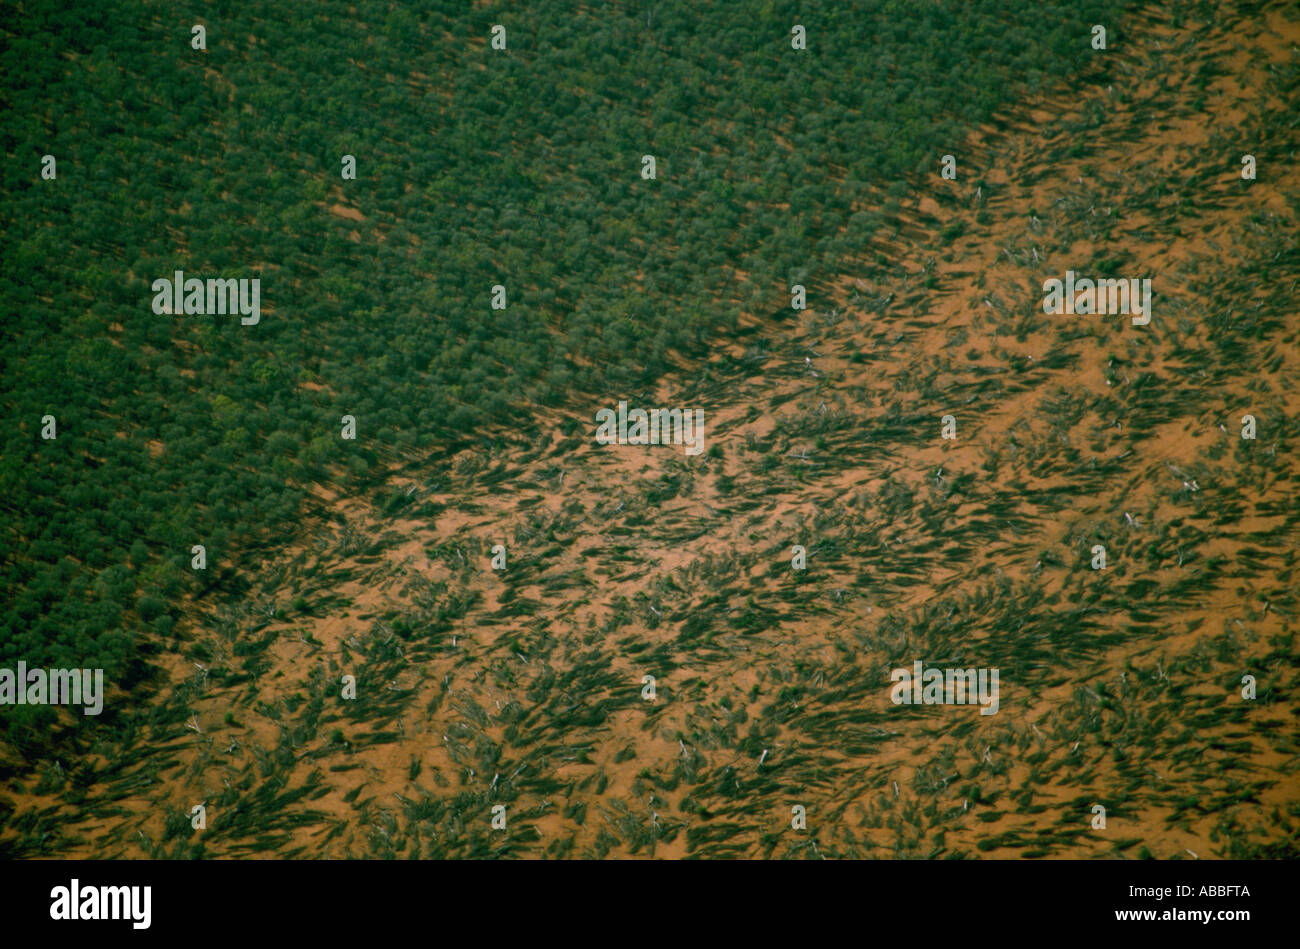 La déforestation dans le Queensland Photo Stock